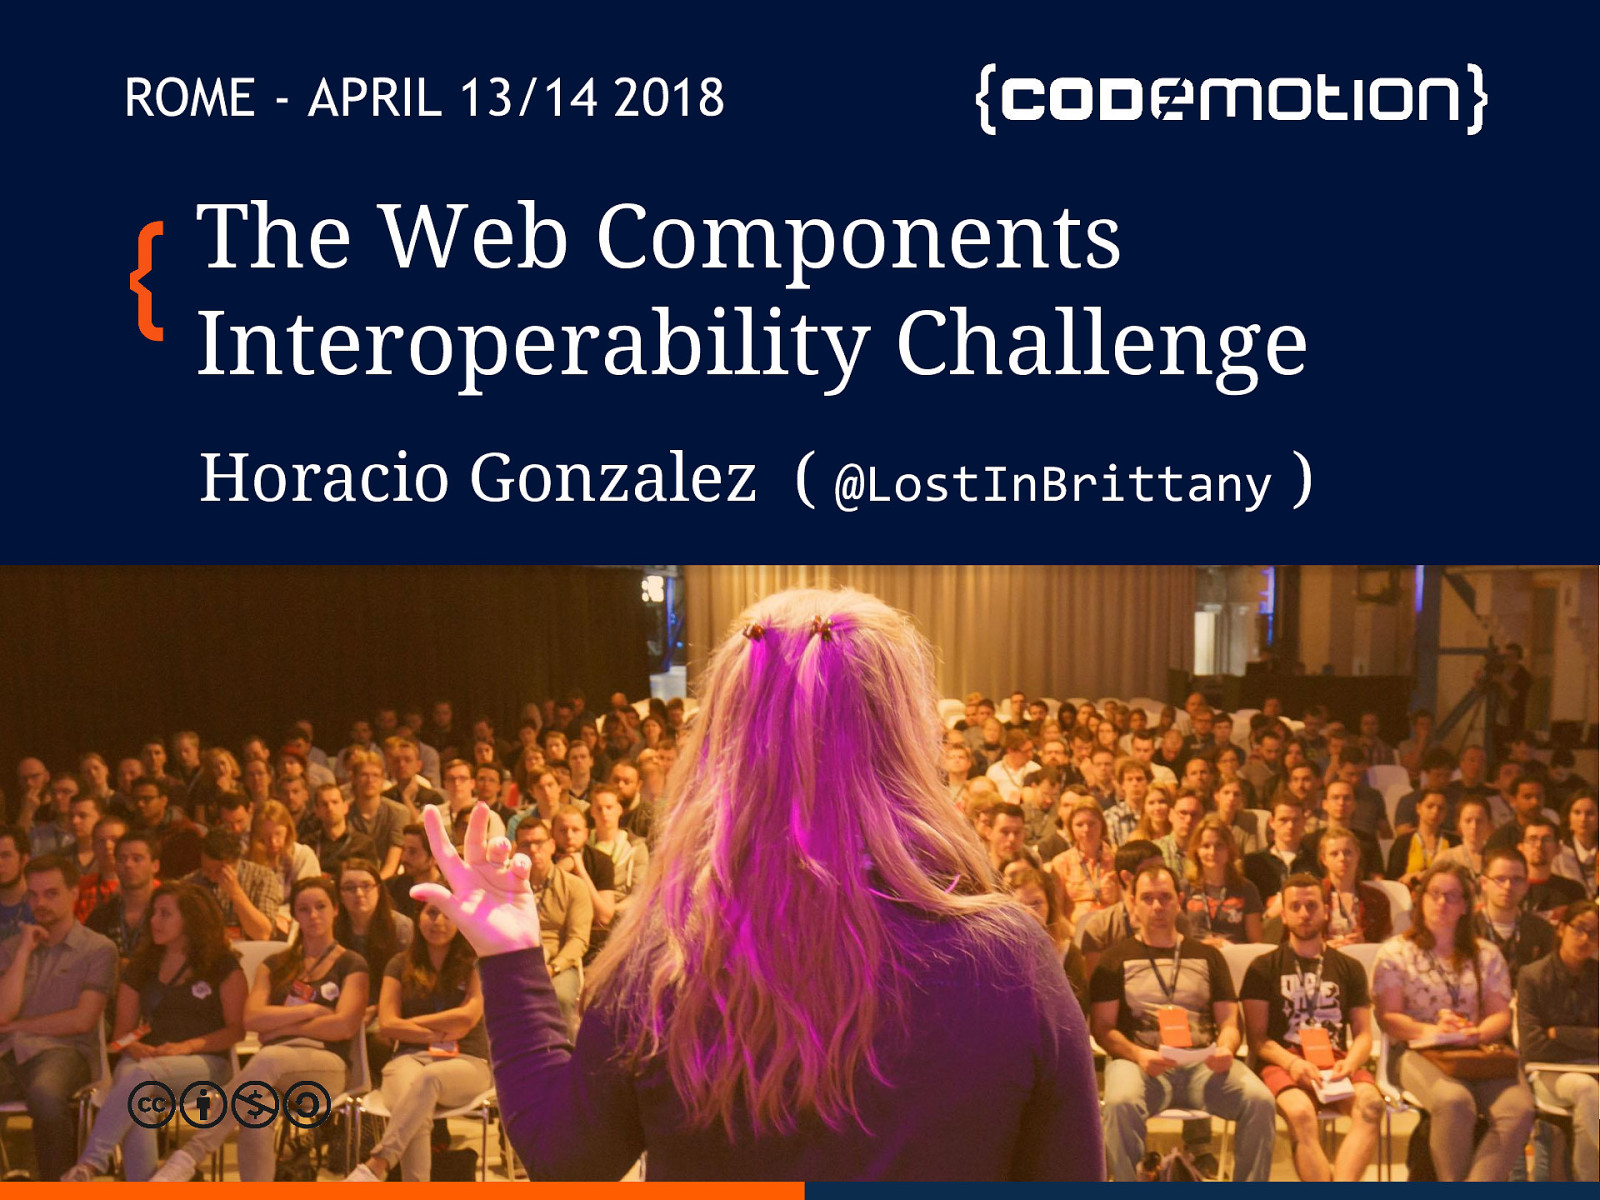 The Web Components interoperability challenge